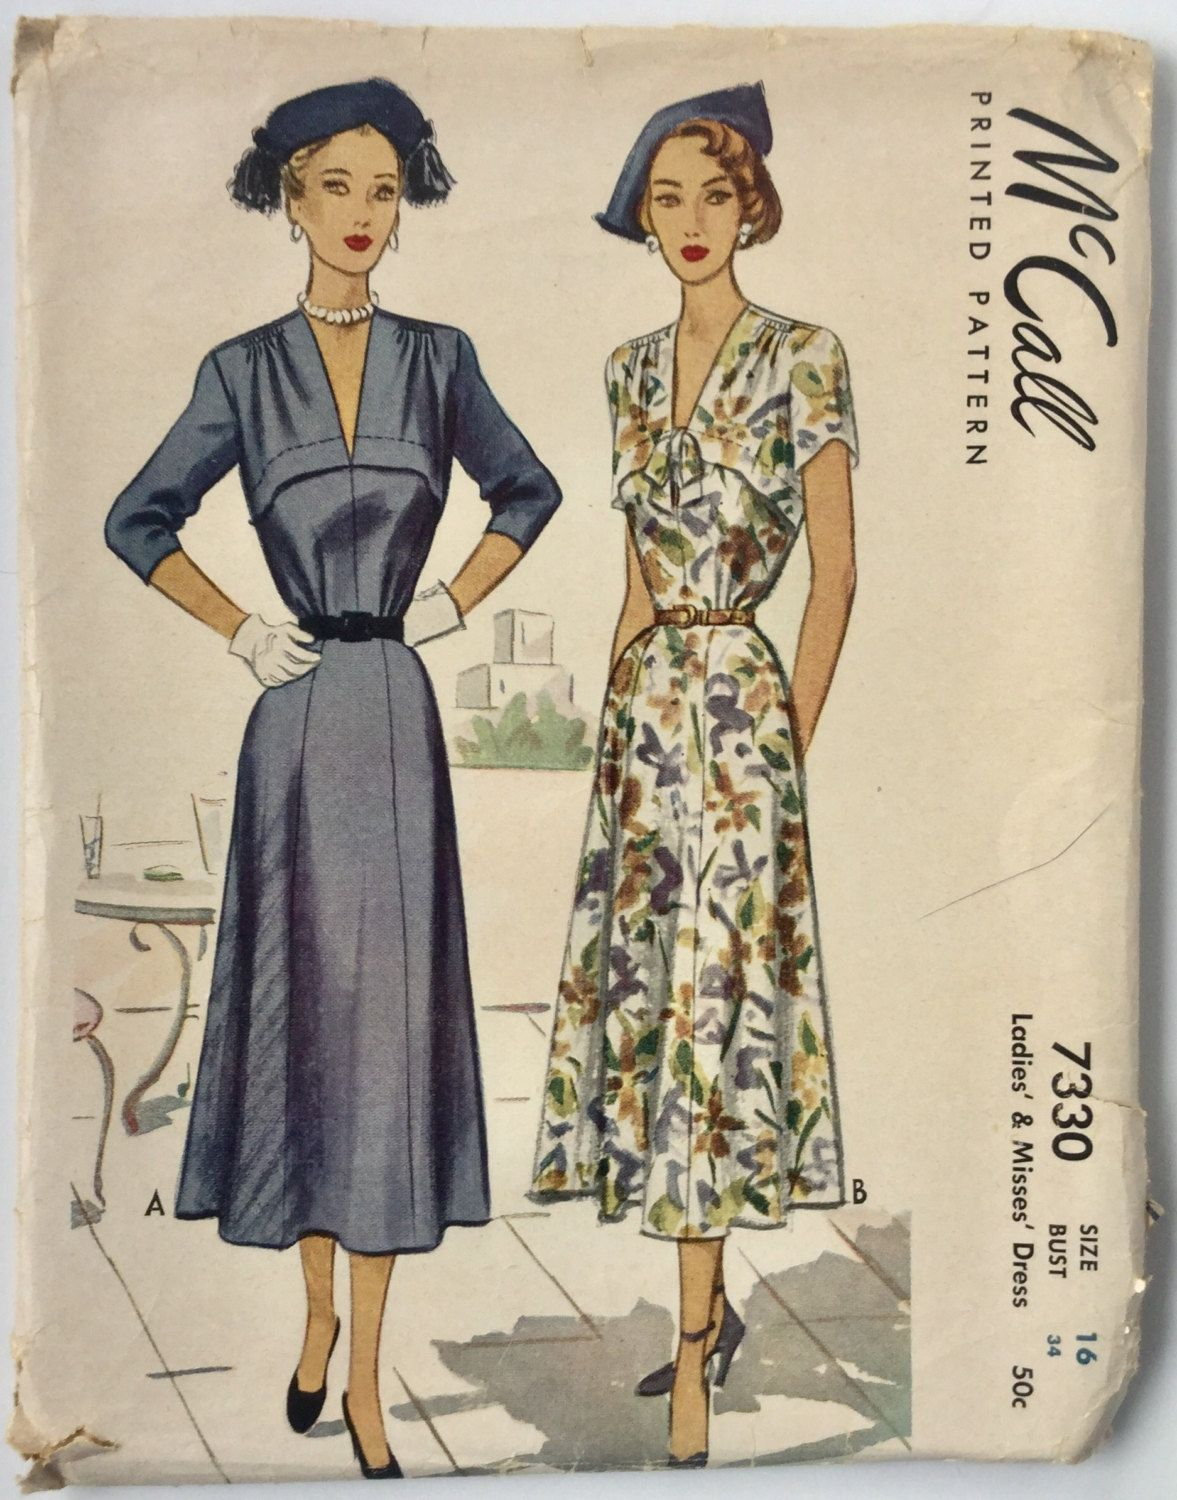 McCalls 7330 vintage dress pattern size 16, bust 34, C 1948 by ...